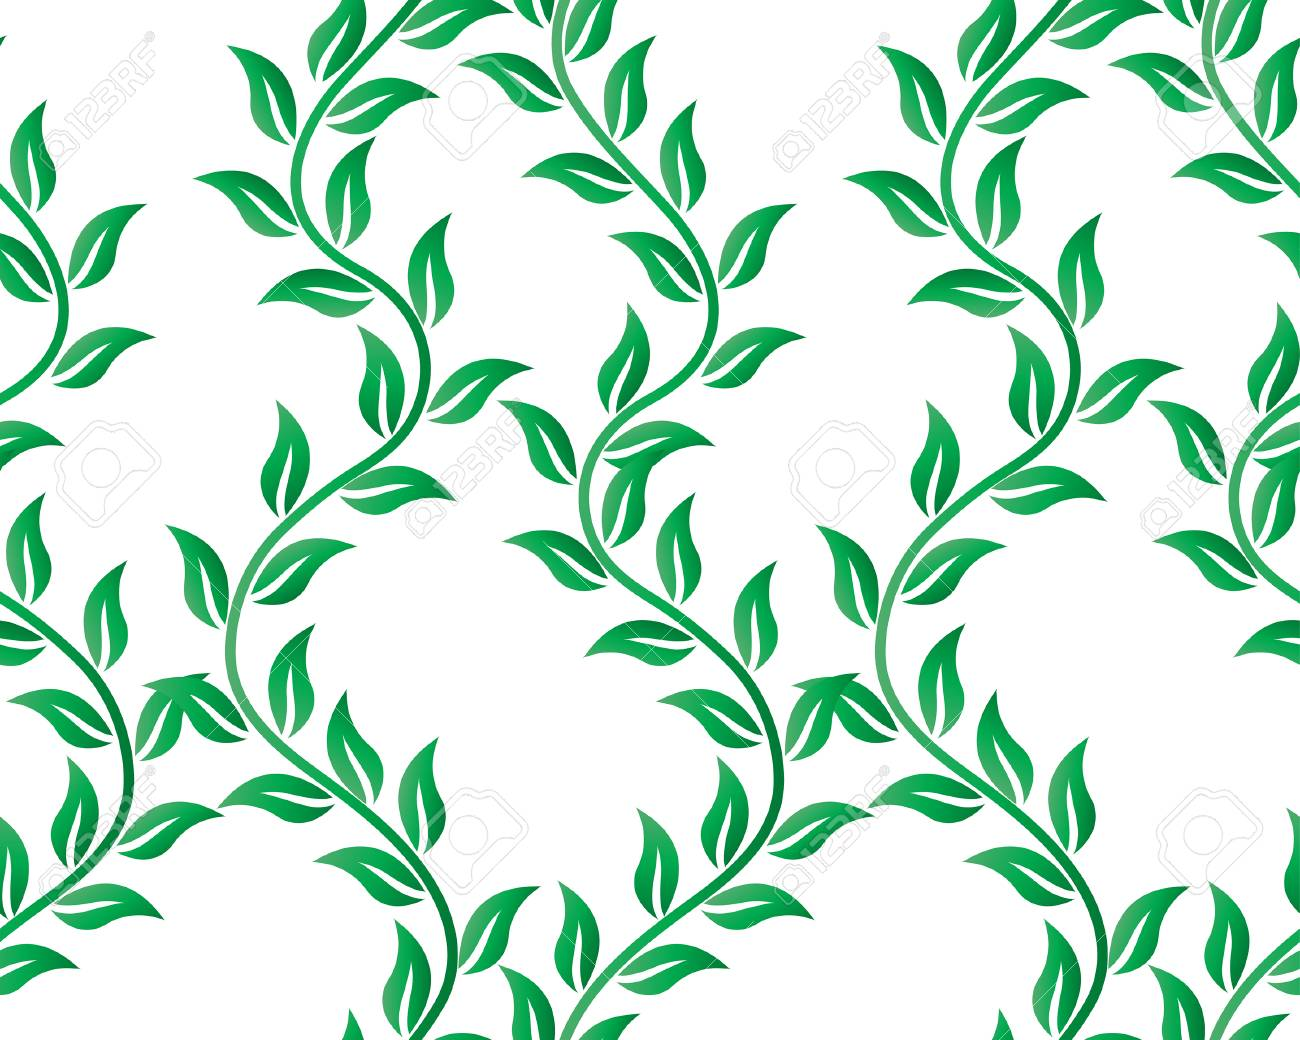 Floral seamless background for yours design use. For easy making seamless pattern just drag all group into swatches bar, and use it for filling any contours. Stock Vector - 4343306